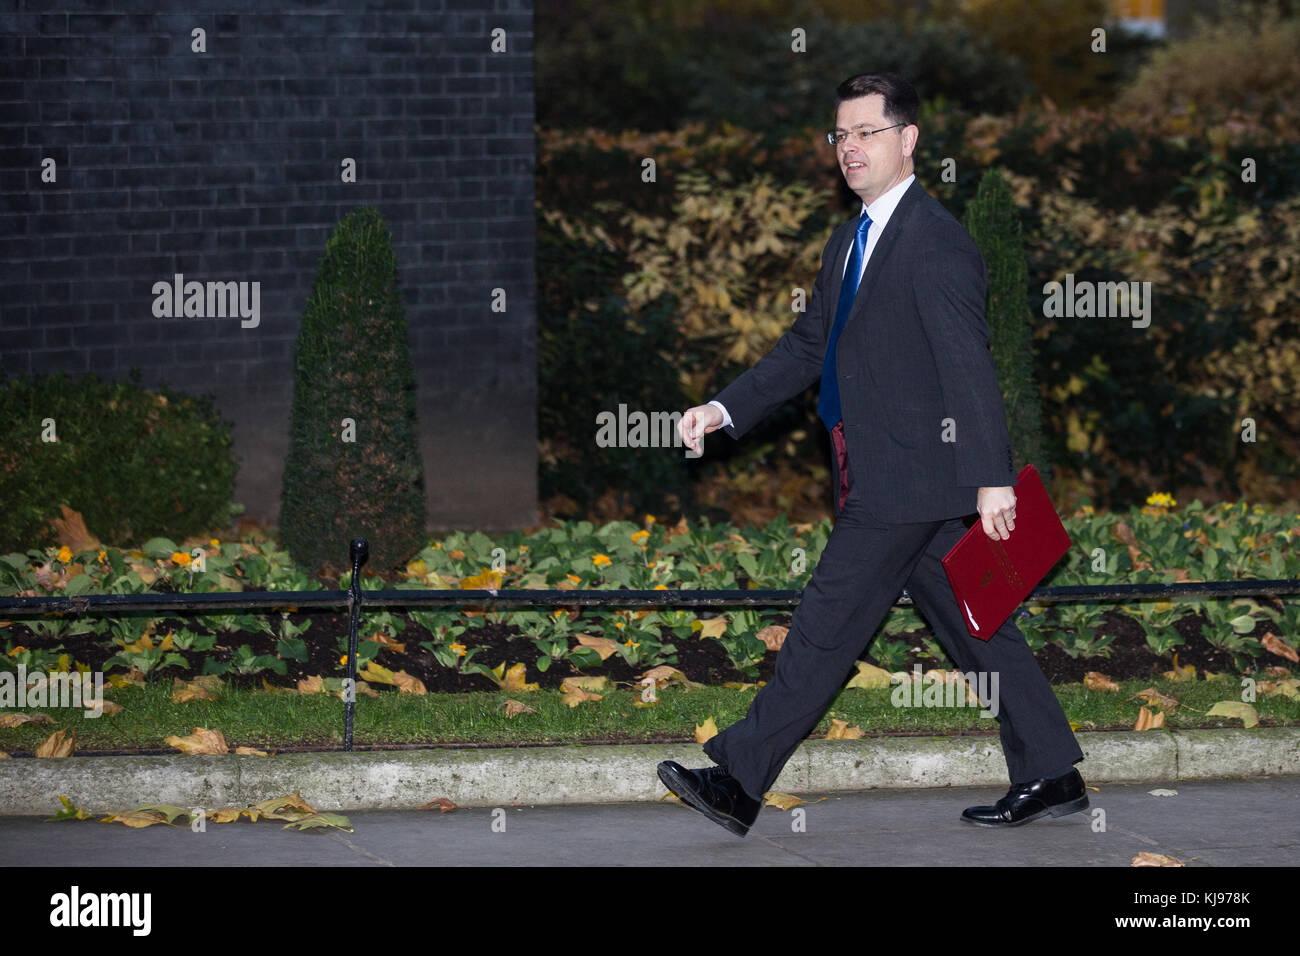 London, UK. 22nd November, 2017. James Brokenshire MP, Secretary of State for Northern Ireland, arrives at 10 Downing - Stock Image